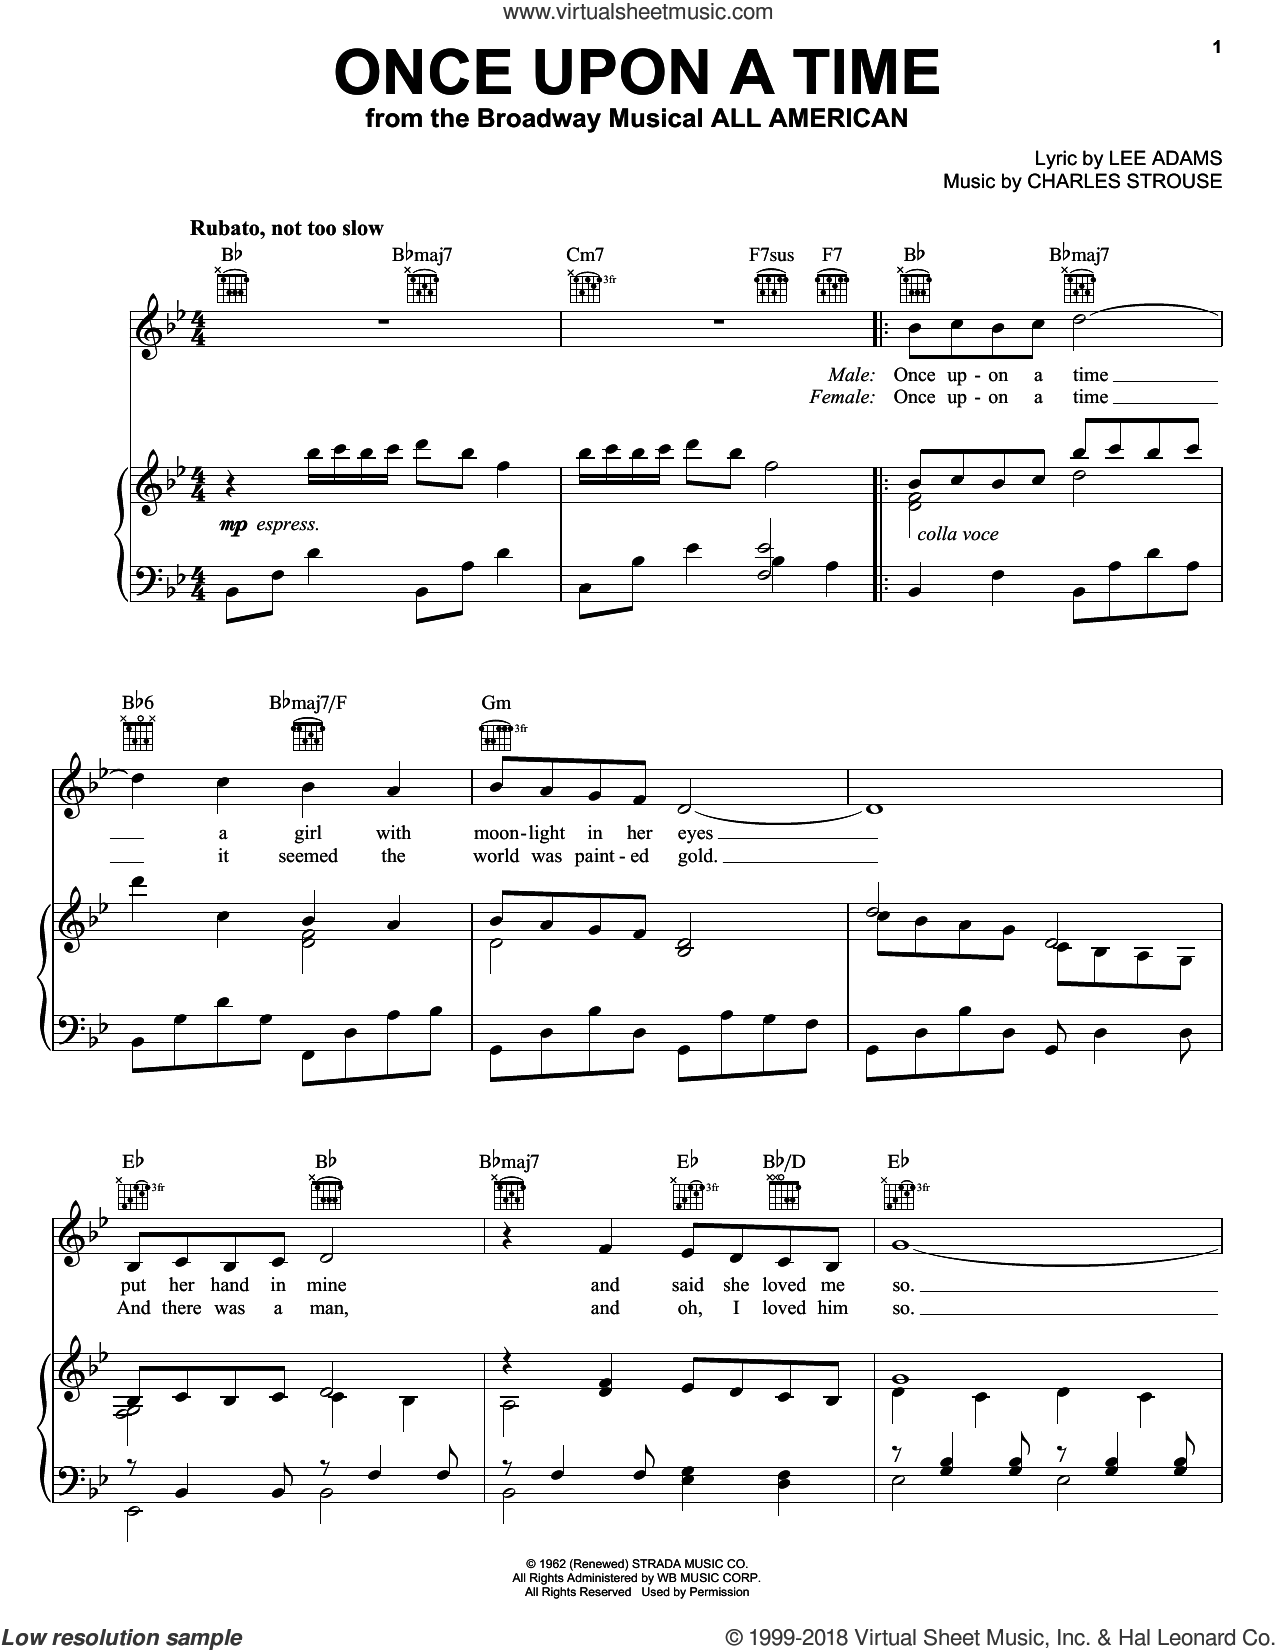 Once Upon A Time sheet music for voice, piano or guitar by Charles Strouse and Lee Adams, intermediate skill level